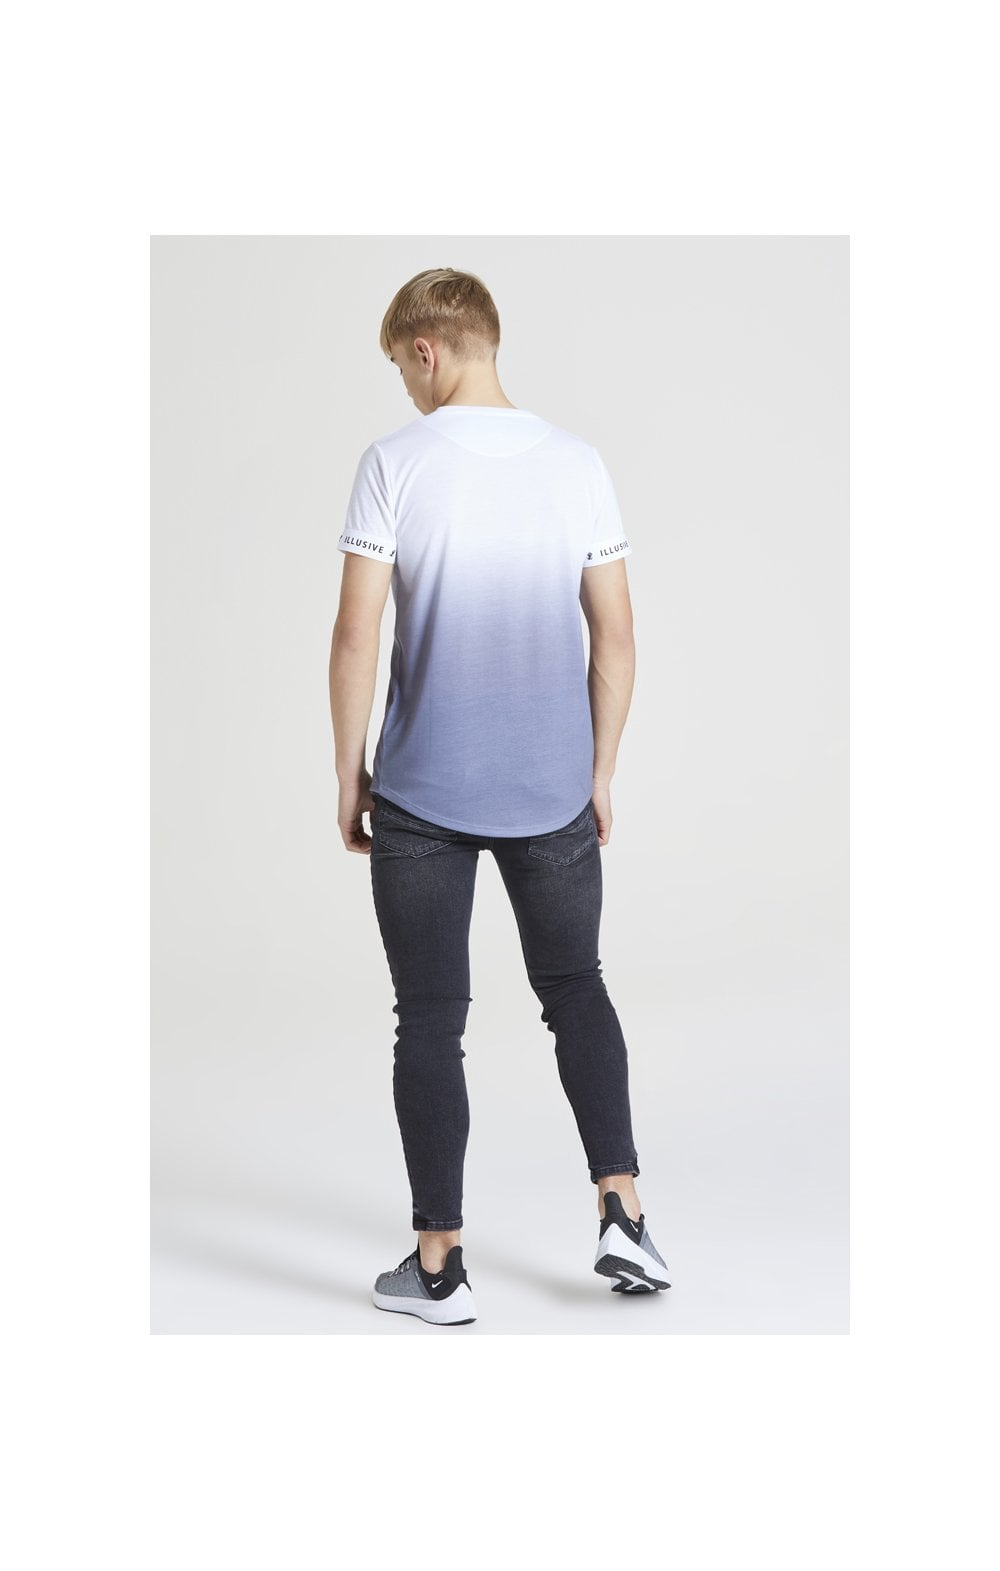 Load image into Gallery viewer, Illusive London Fade Tech Tee – White & Grey (5)